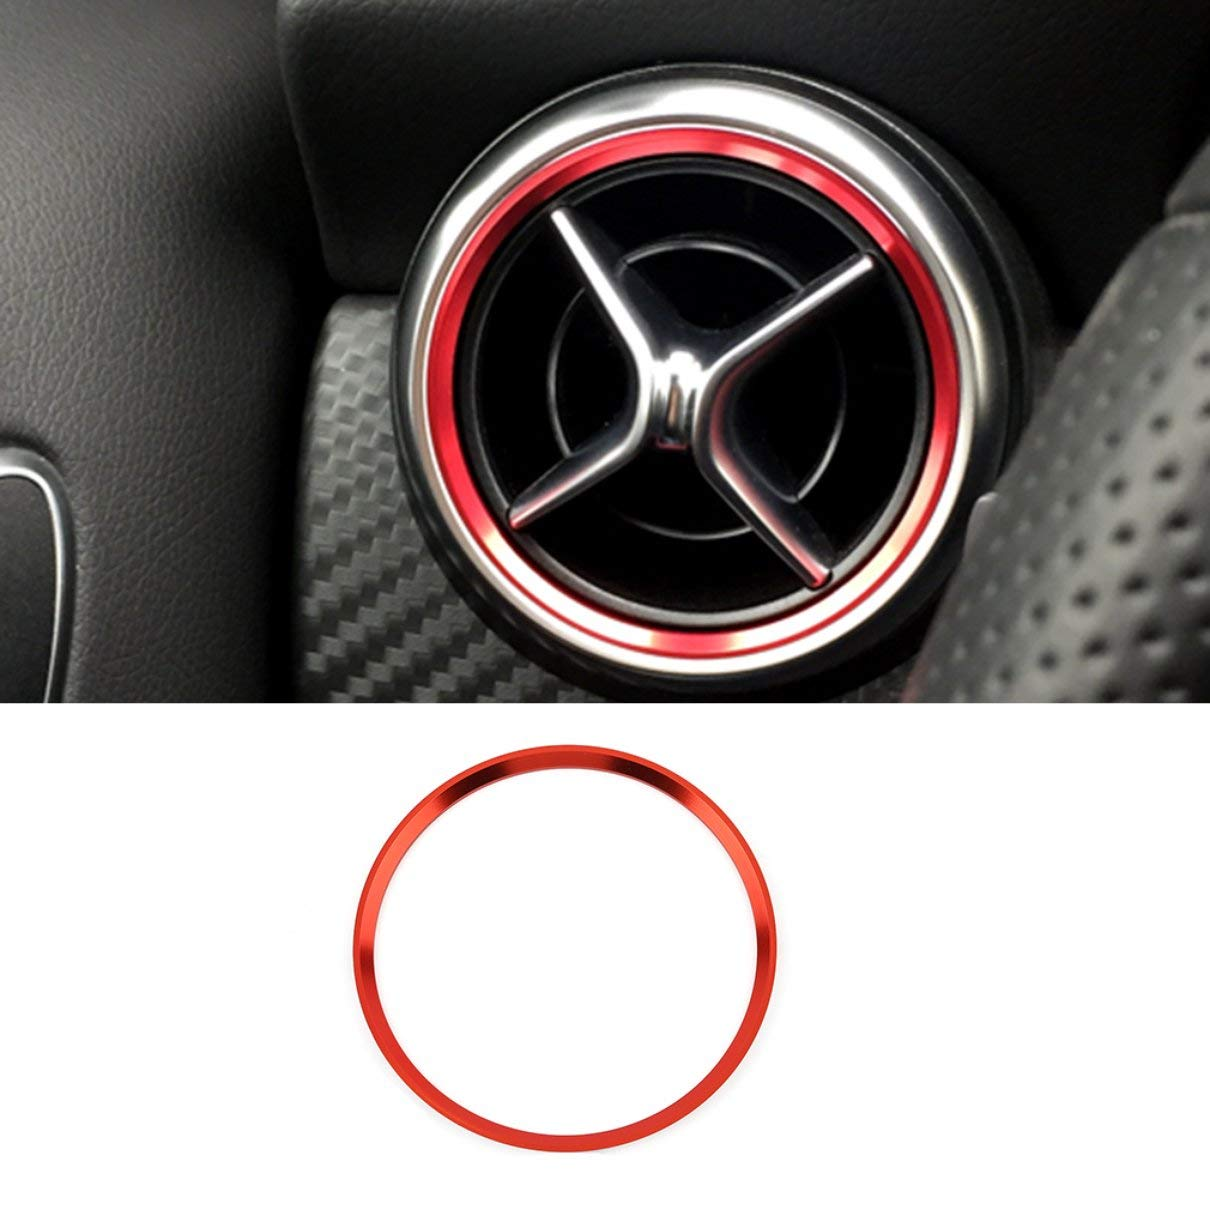 Car Styling Air Condition Air Vent Outlet Ring Cover Trim Decoration for Mercedes Benz AMG Accessories